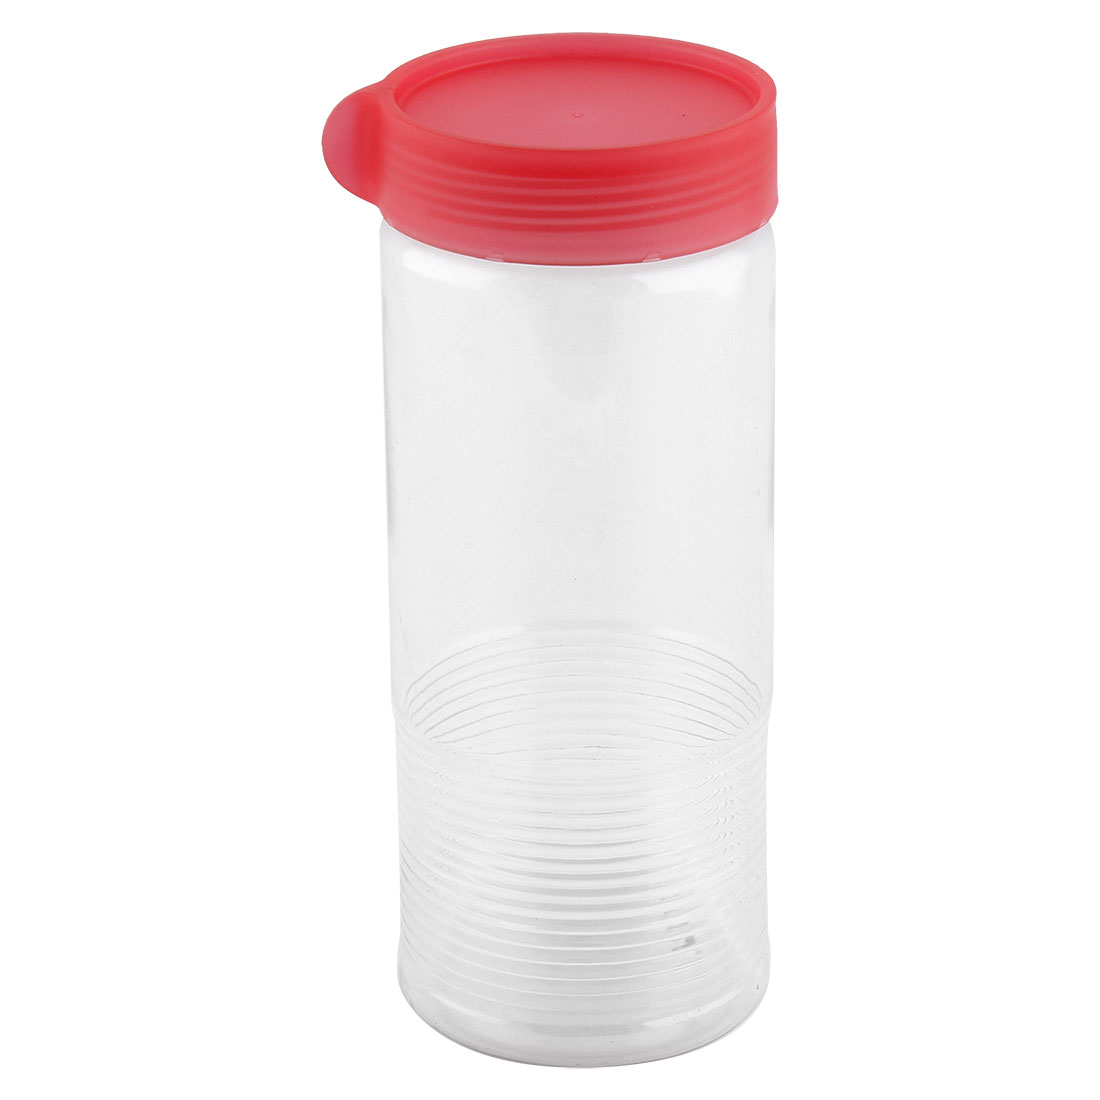 Household Plastic Cylindrical Shaped Food Storage Lid Seal Box Container Fuchsia 900ML